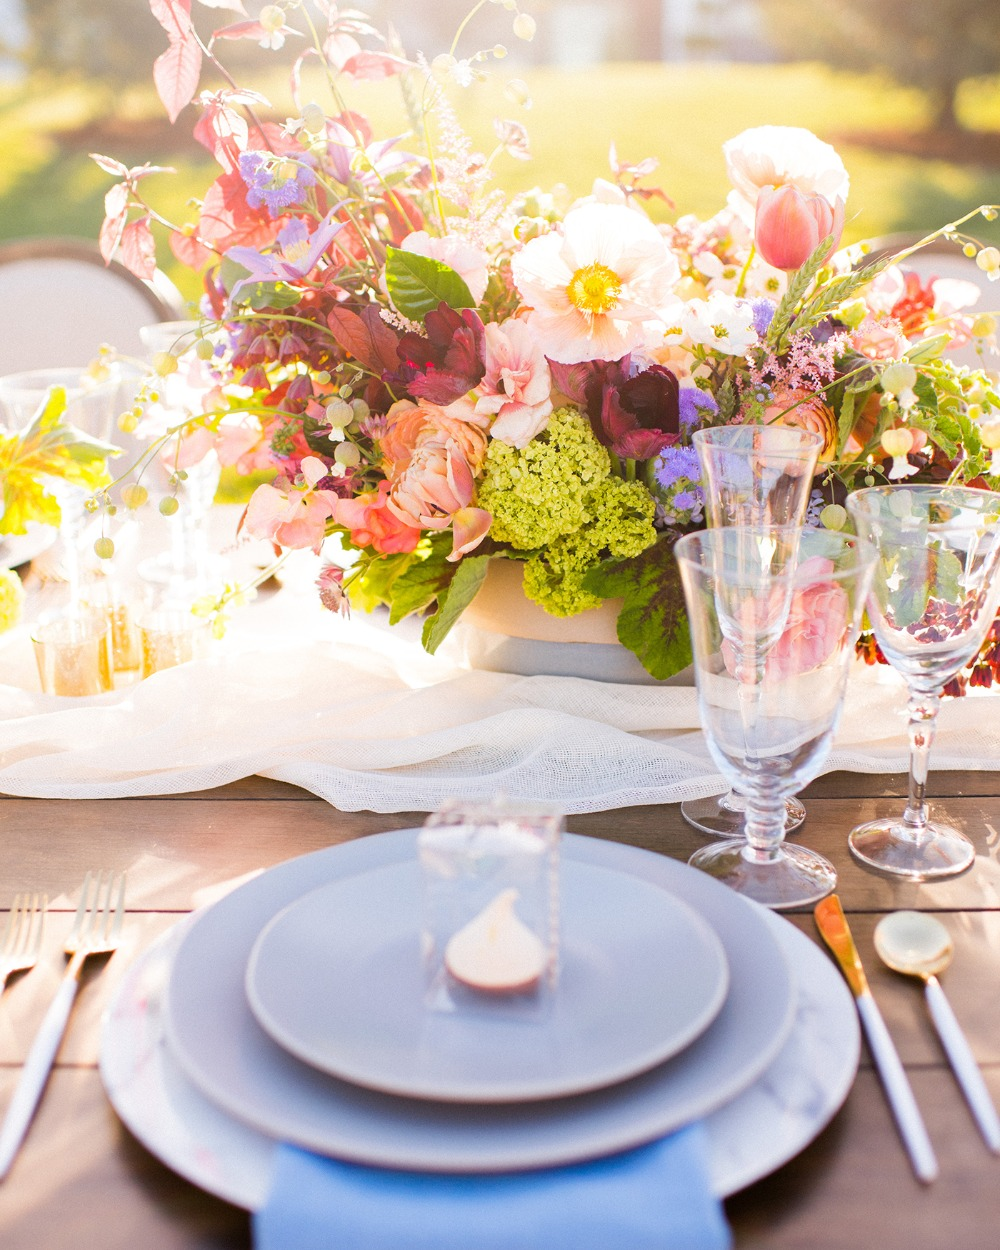 quaint and elegant wedding place setting